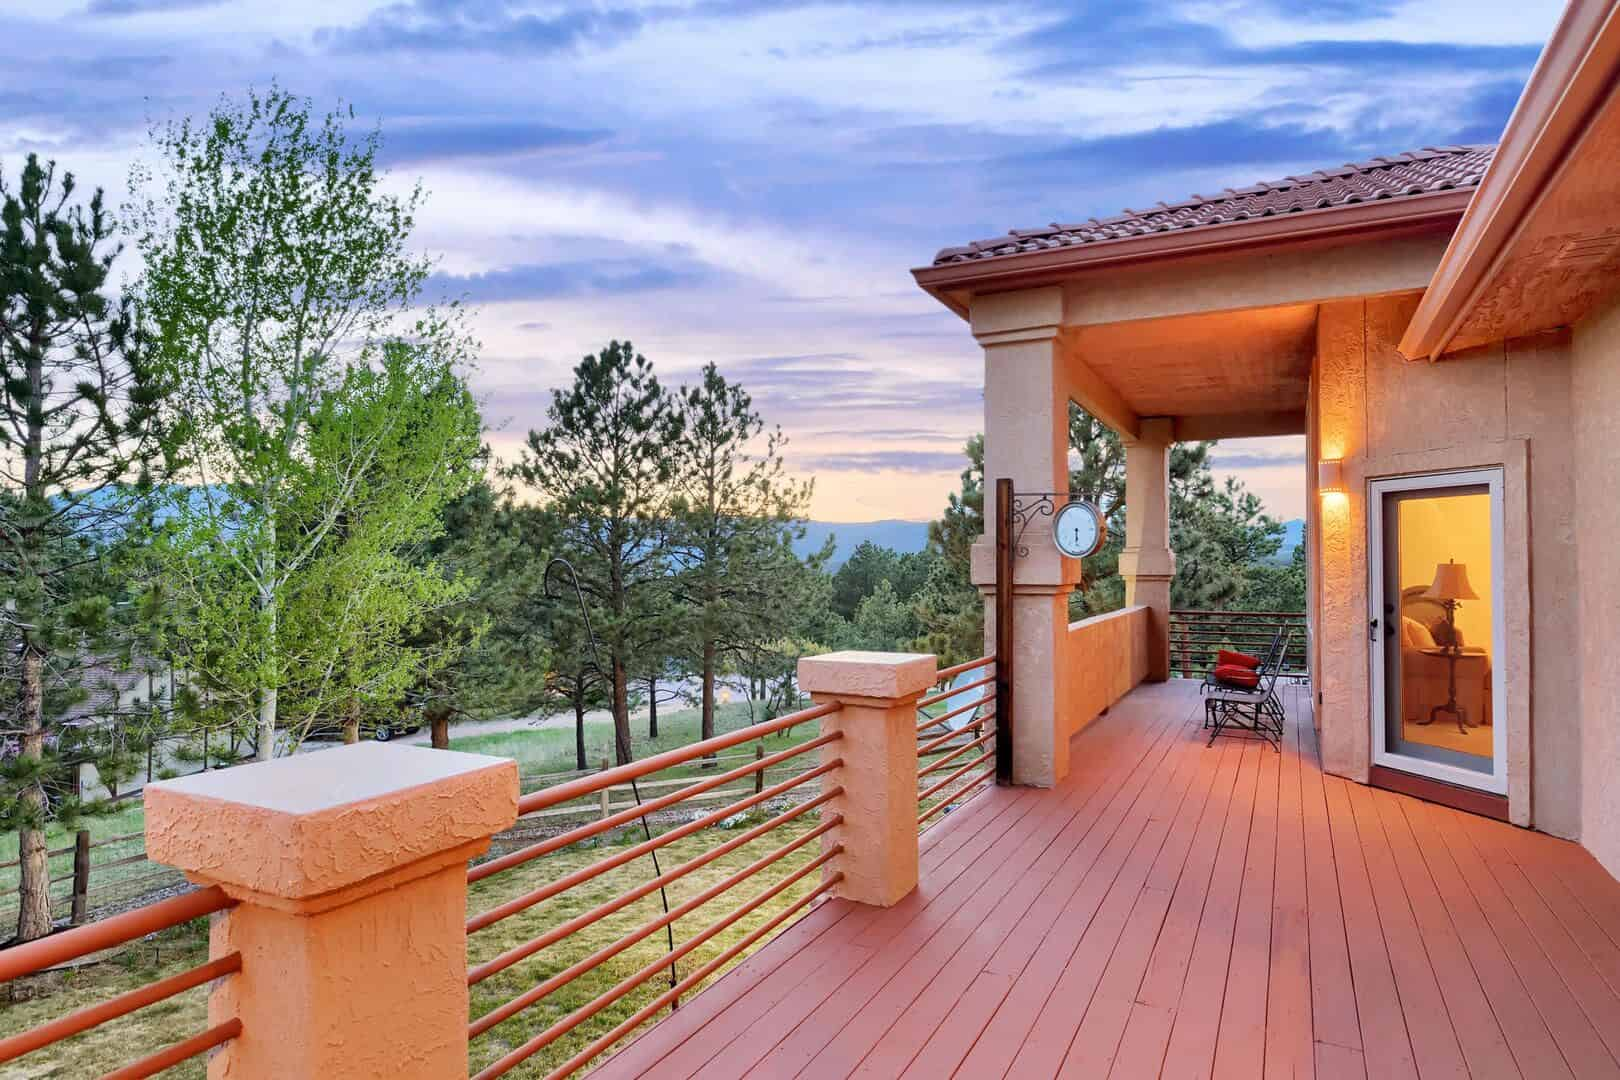 Large Covered and Open Deck Overlooking Trees and Mtn Views